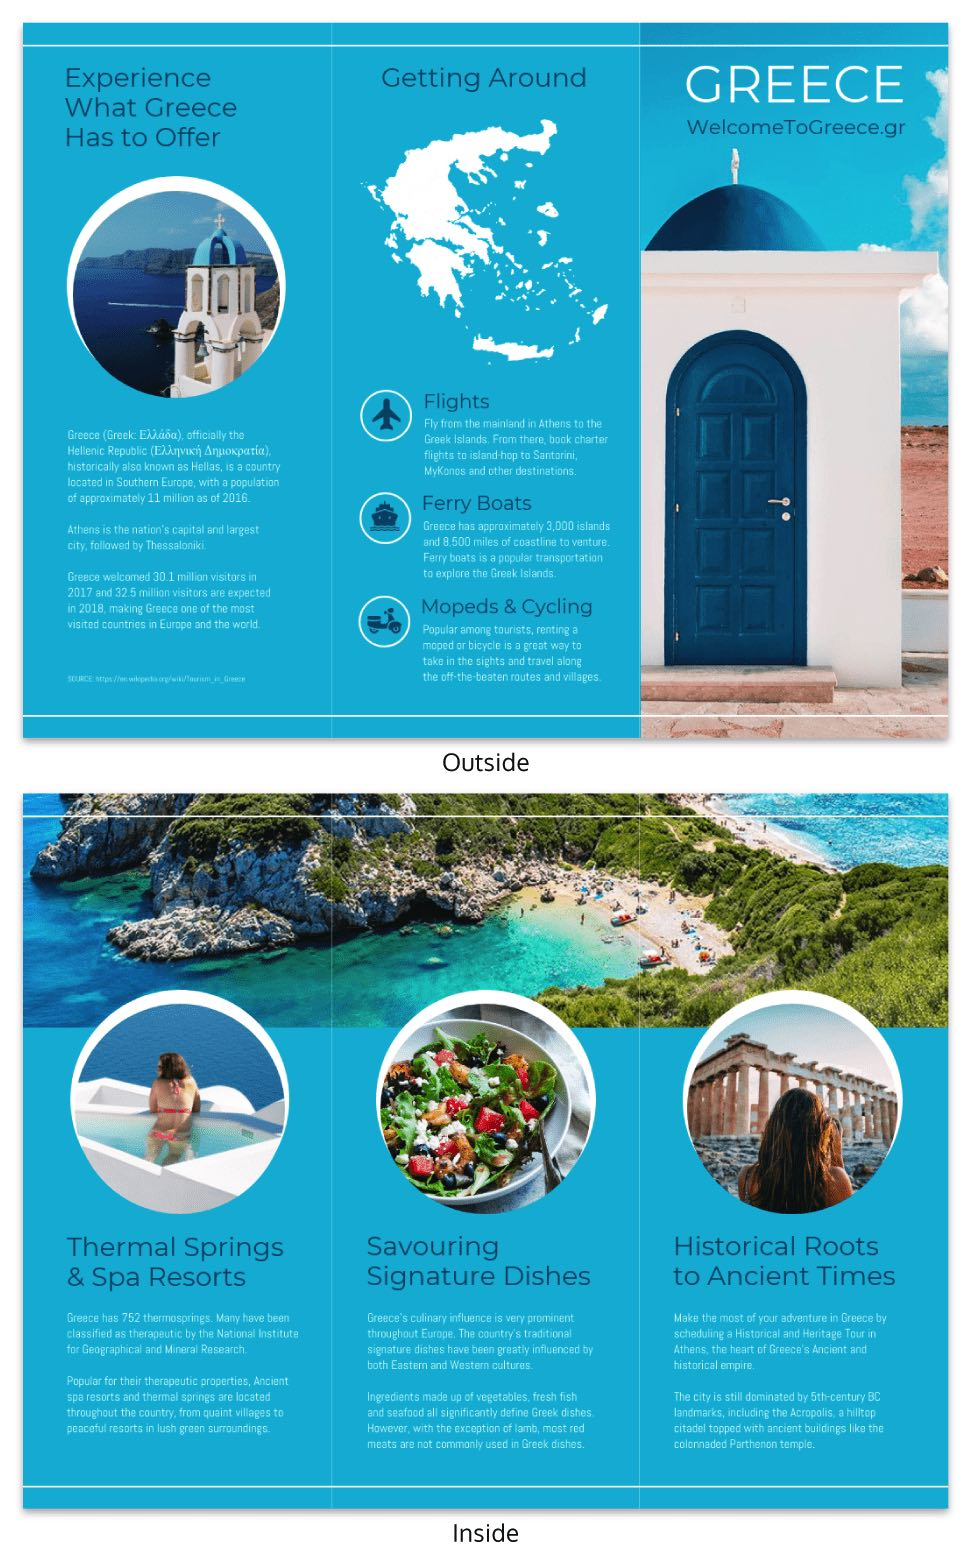 21 brochure templates and design tips to inform your audience and promote your business  updated